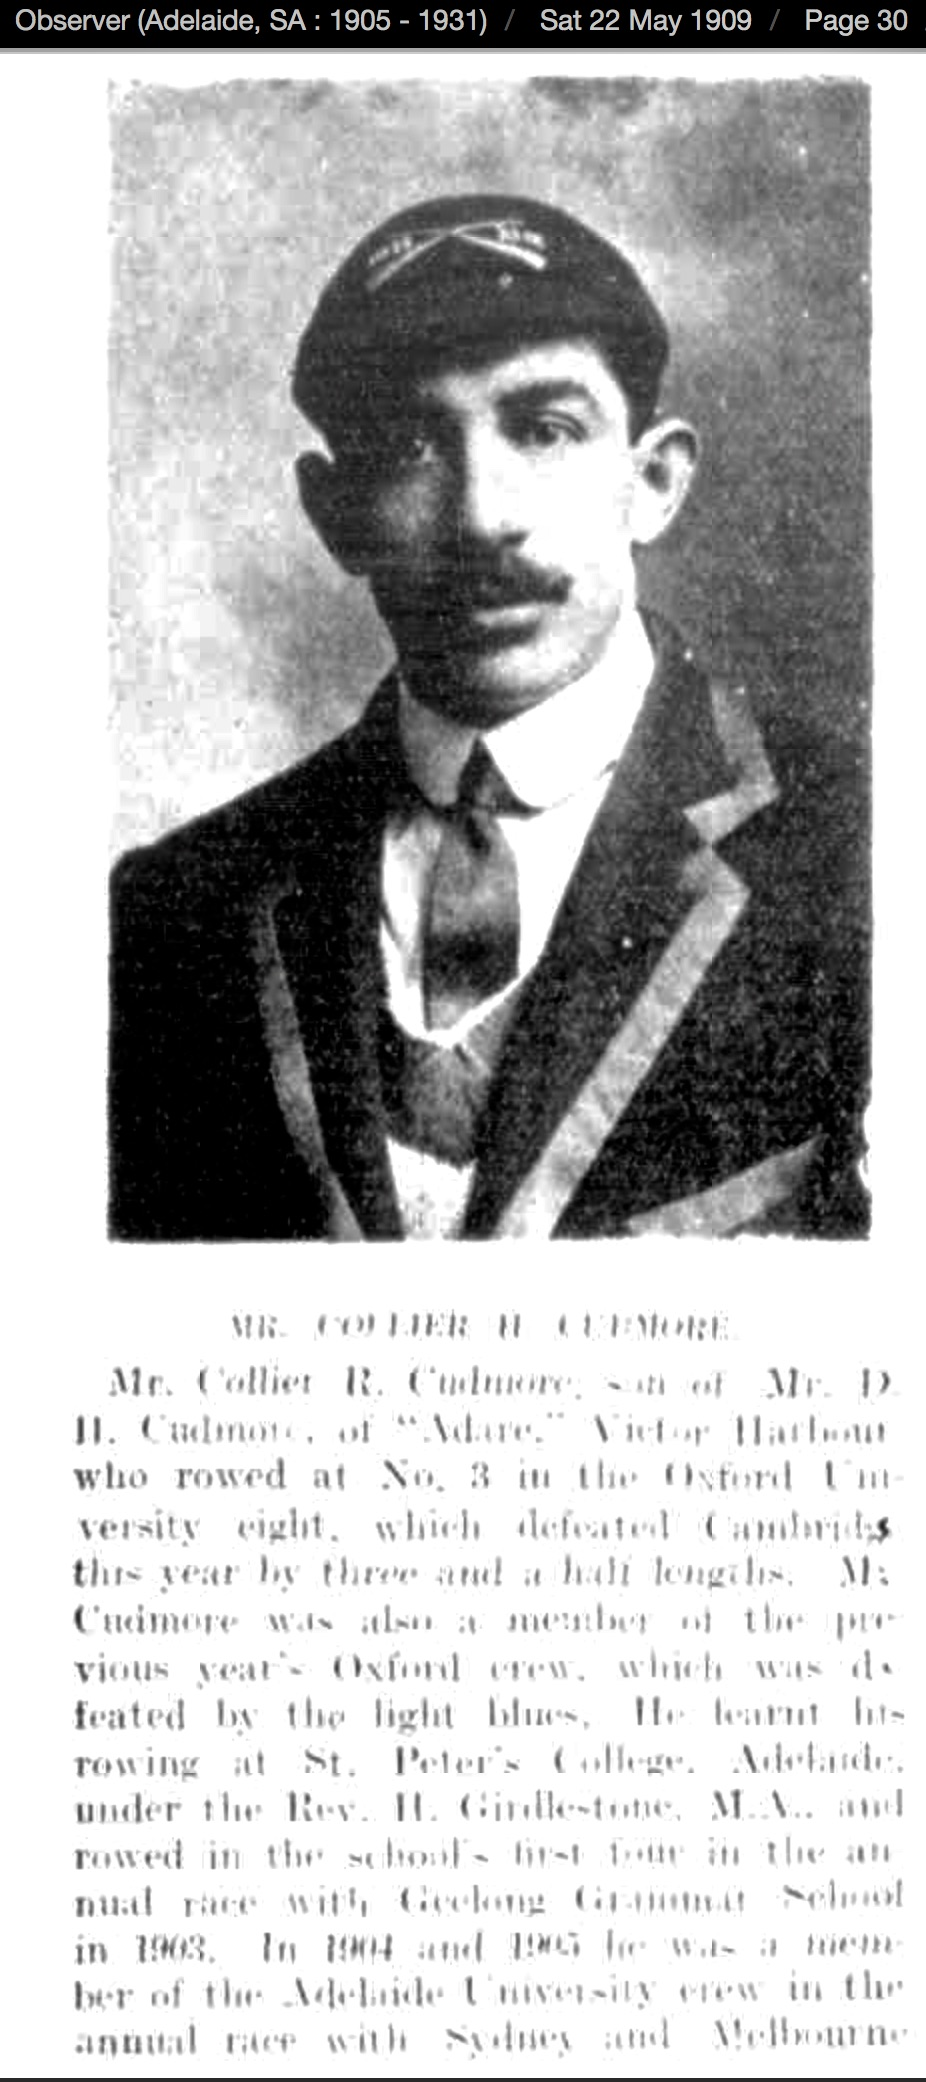 Collier Cudmore Adelaide Observer May 1909